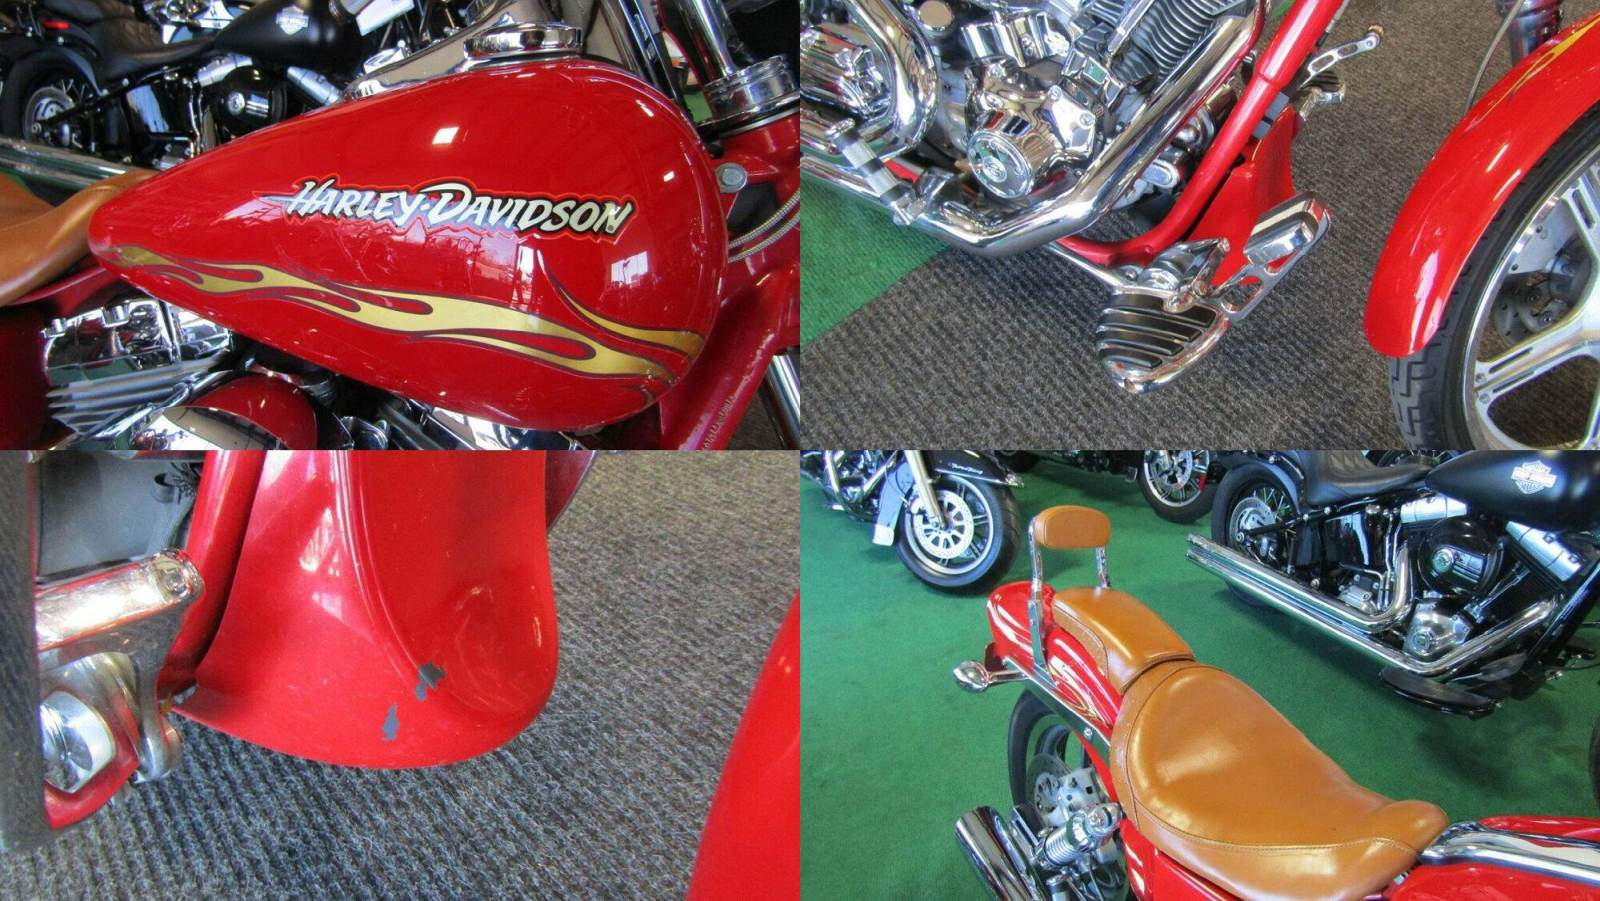 2001 Harley-Davidson DYNA WIDE GLIDE SCREAMIN' EAGLE RED w 23k GOLD FLAMES used for sale craigslist